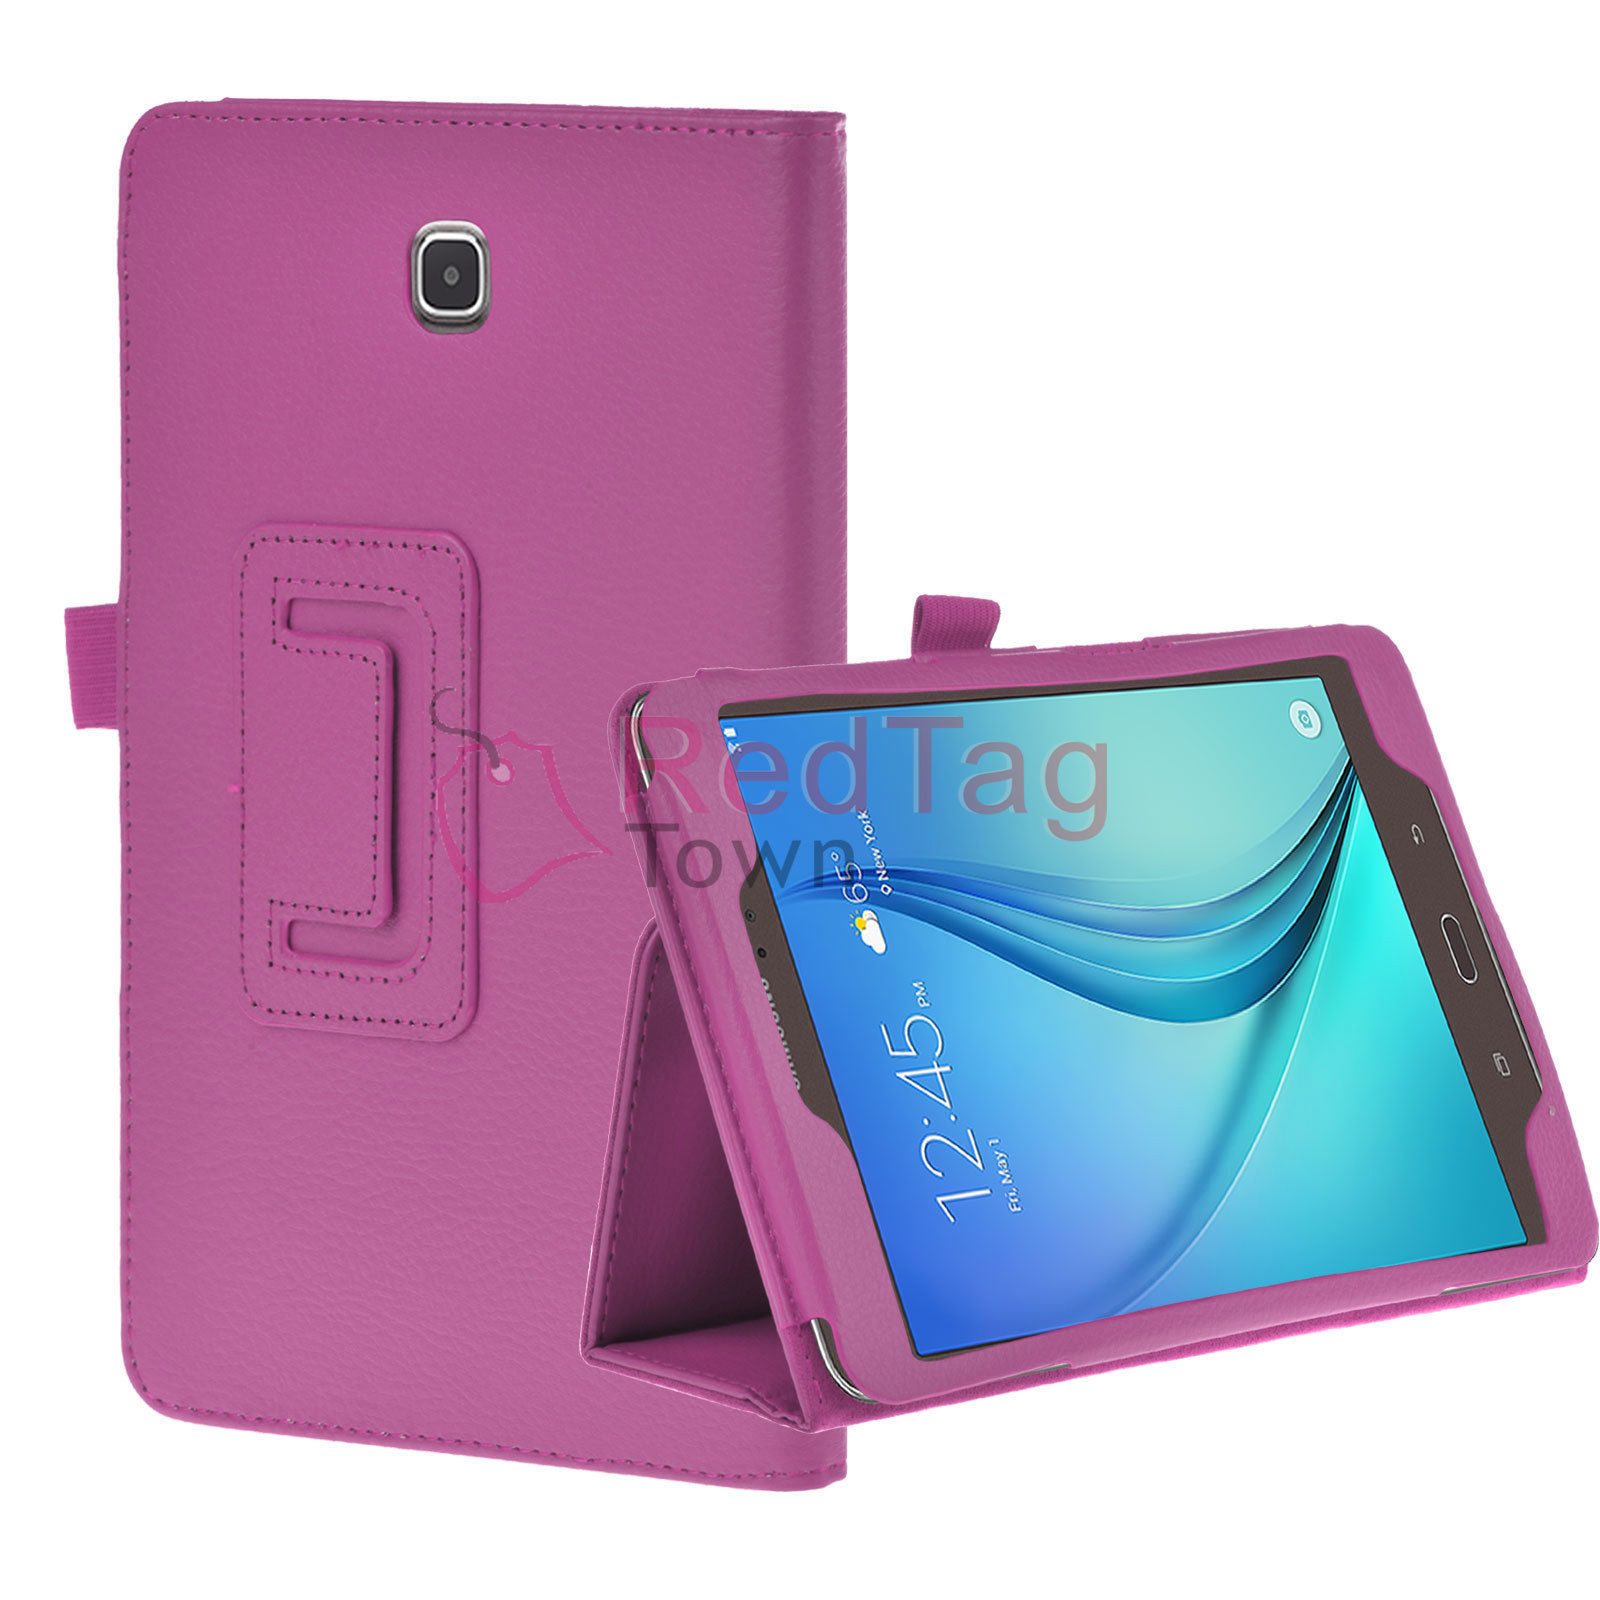 Leather-Case-Cover-for-Samsung-Galaxy-Tab-A-8-0-9-7-10-1-Tablet-Auto-Sleep-Wake